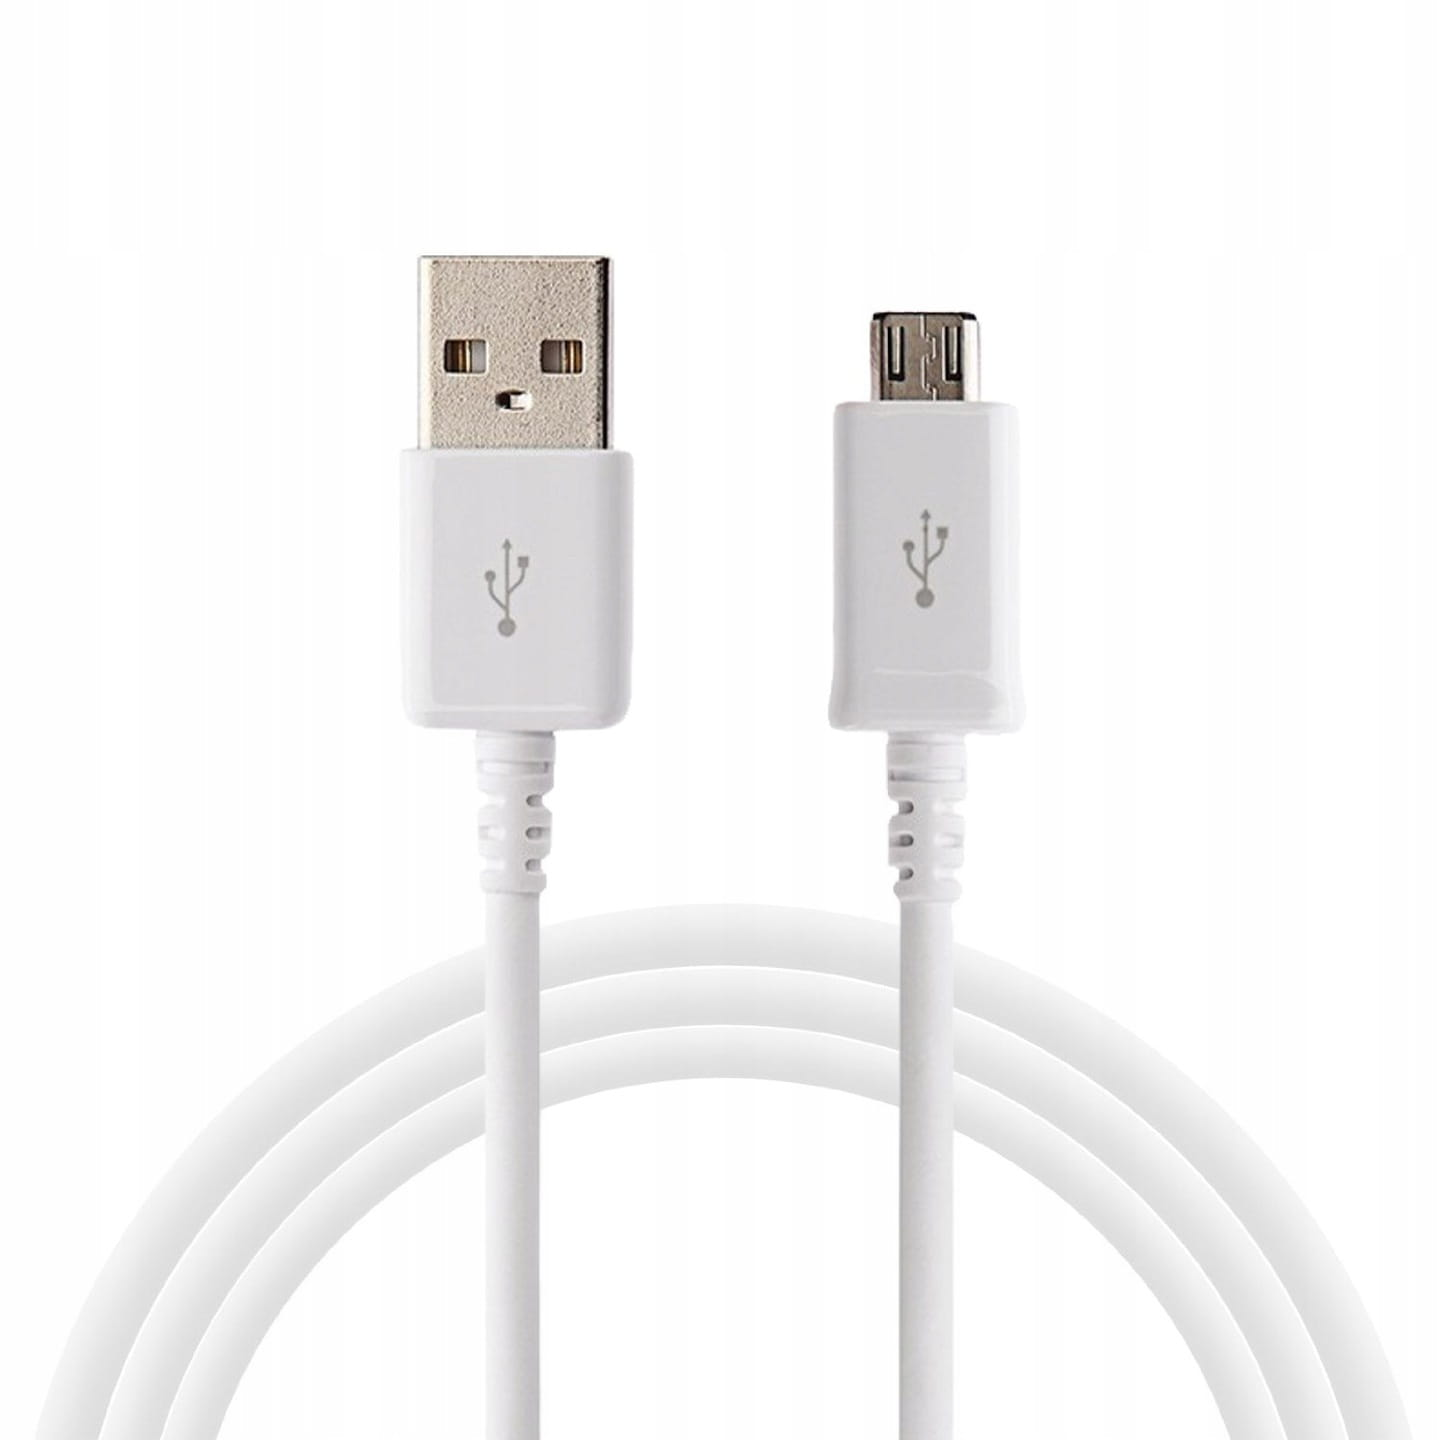 Kabel micro USB do Samsung Quick Charge dł. 1m